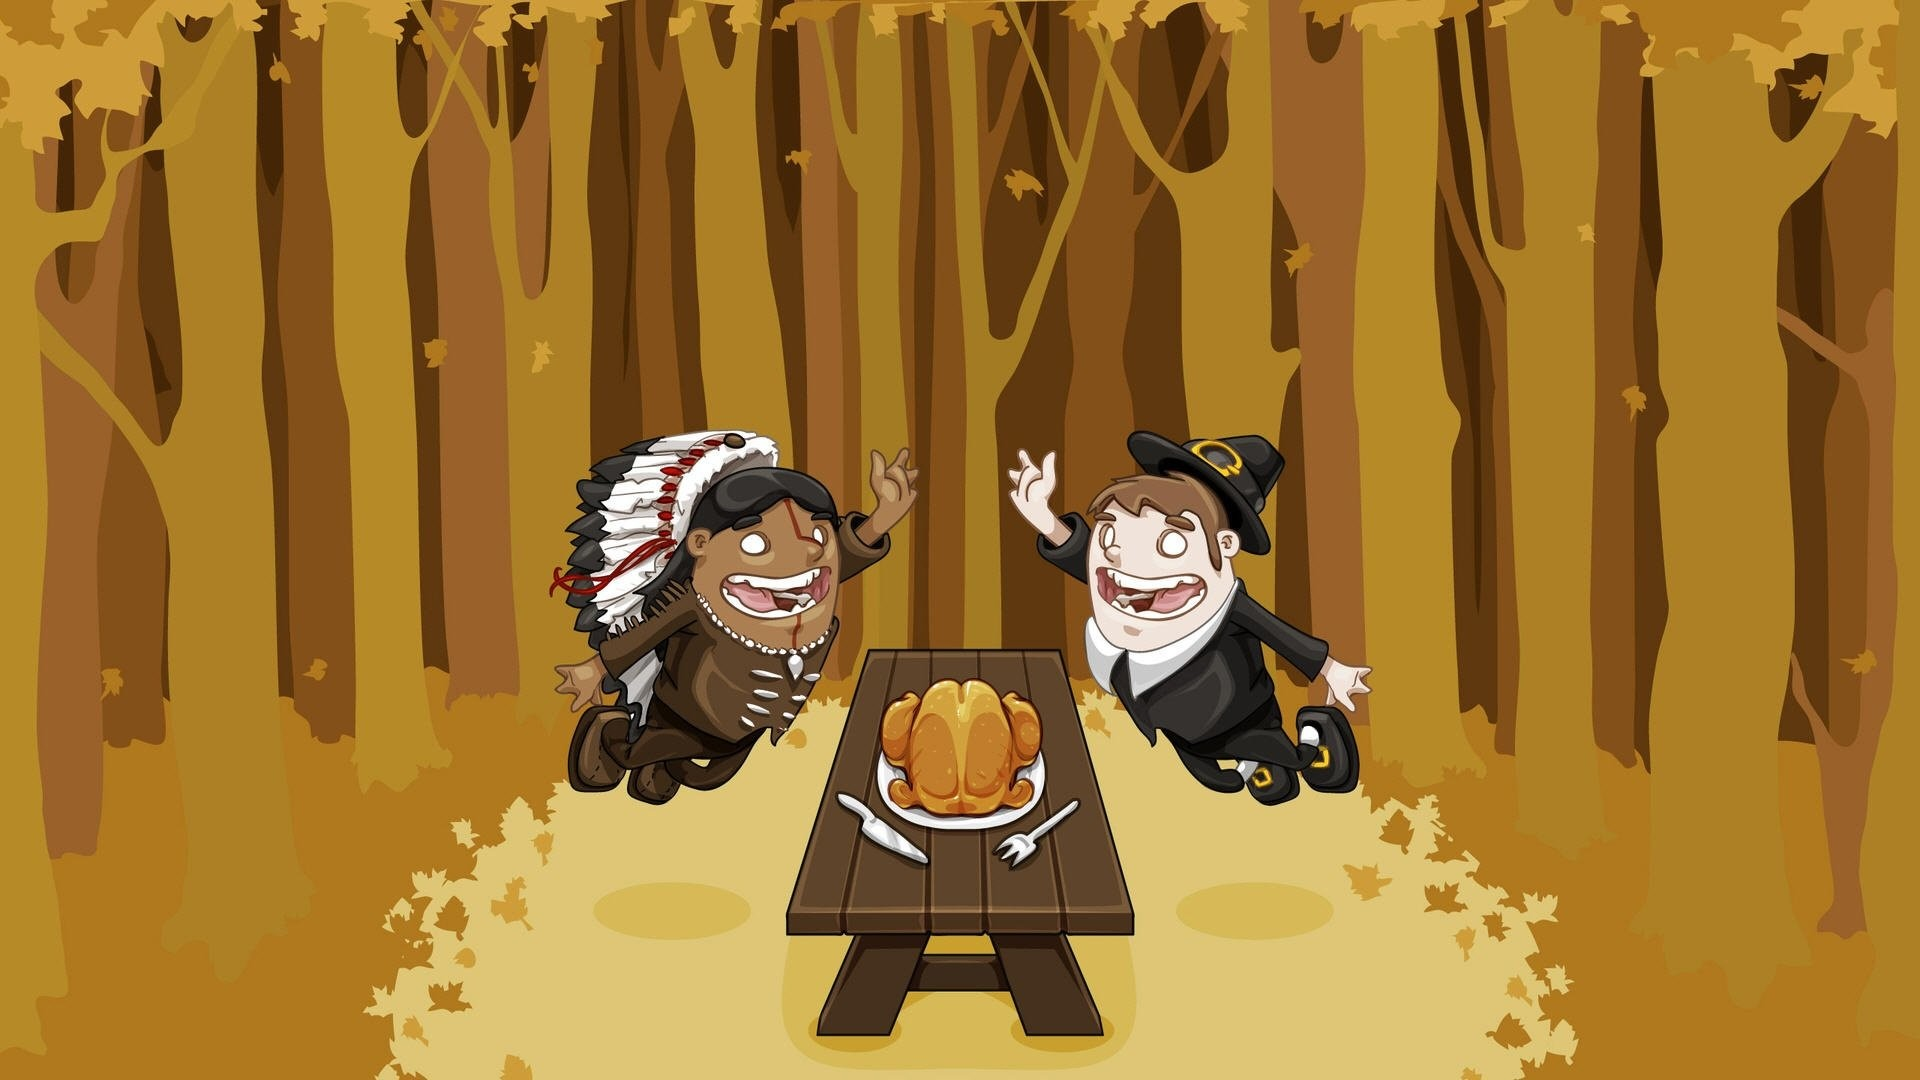 Funny Wallpapers For Laptop 60 Images: Cute Thanksgiving Wallpapers For Desktop (60+ Images